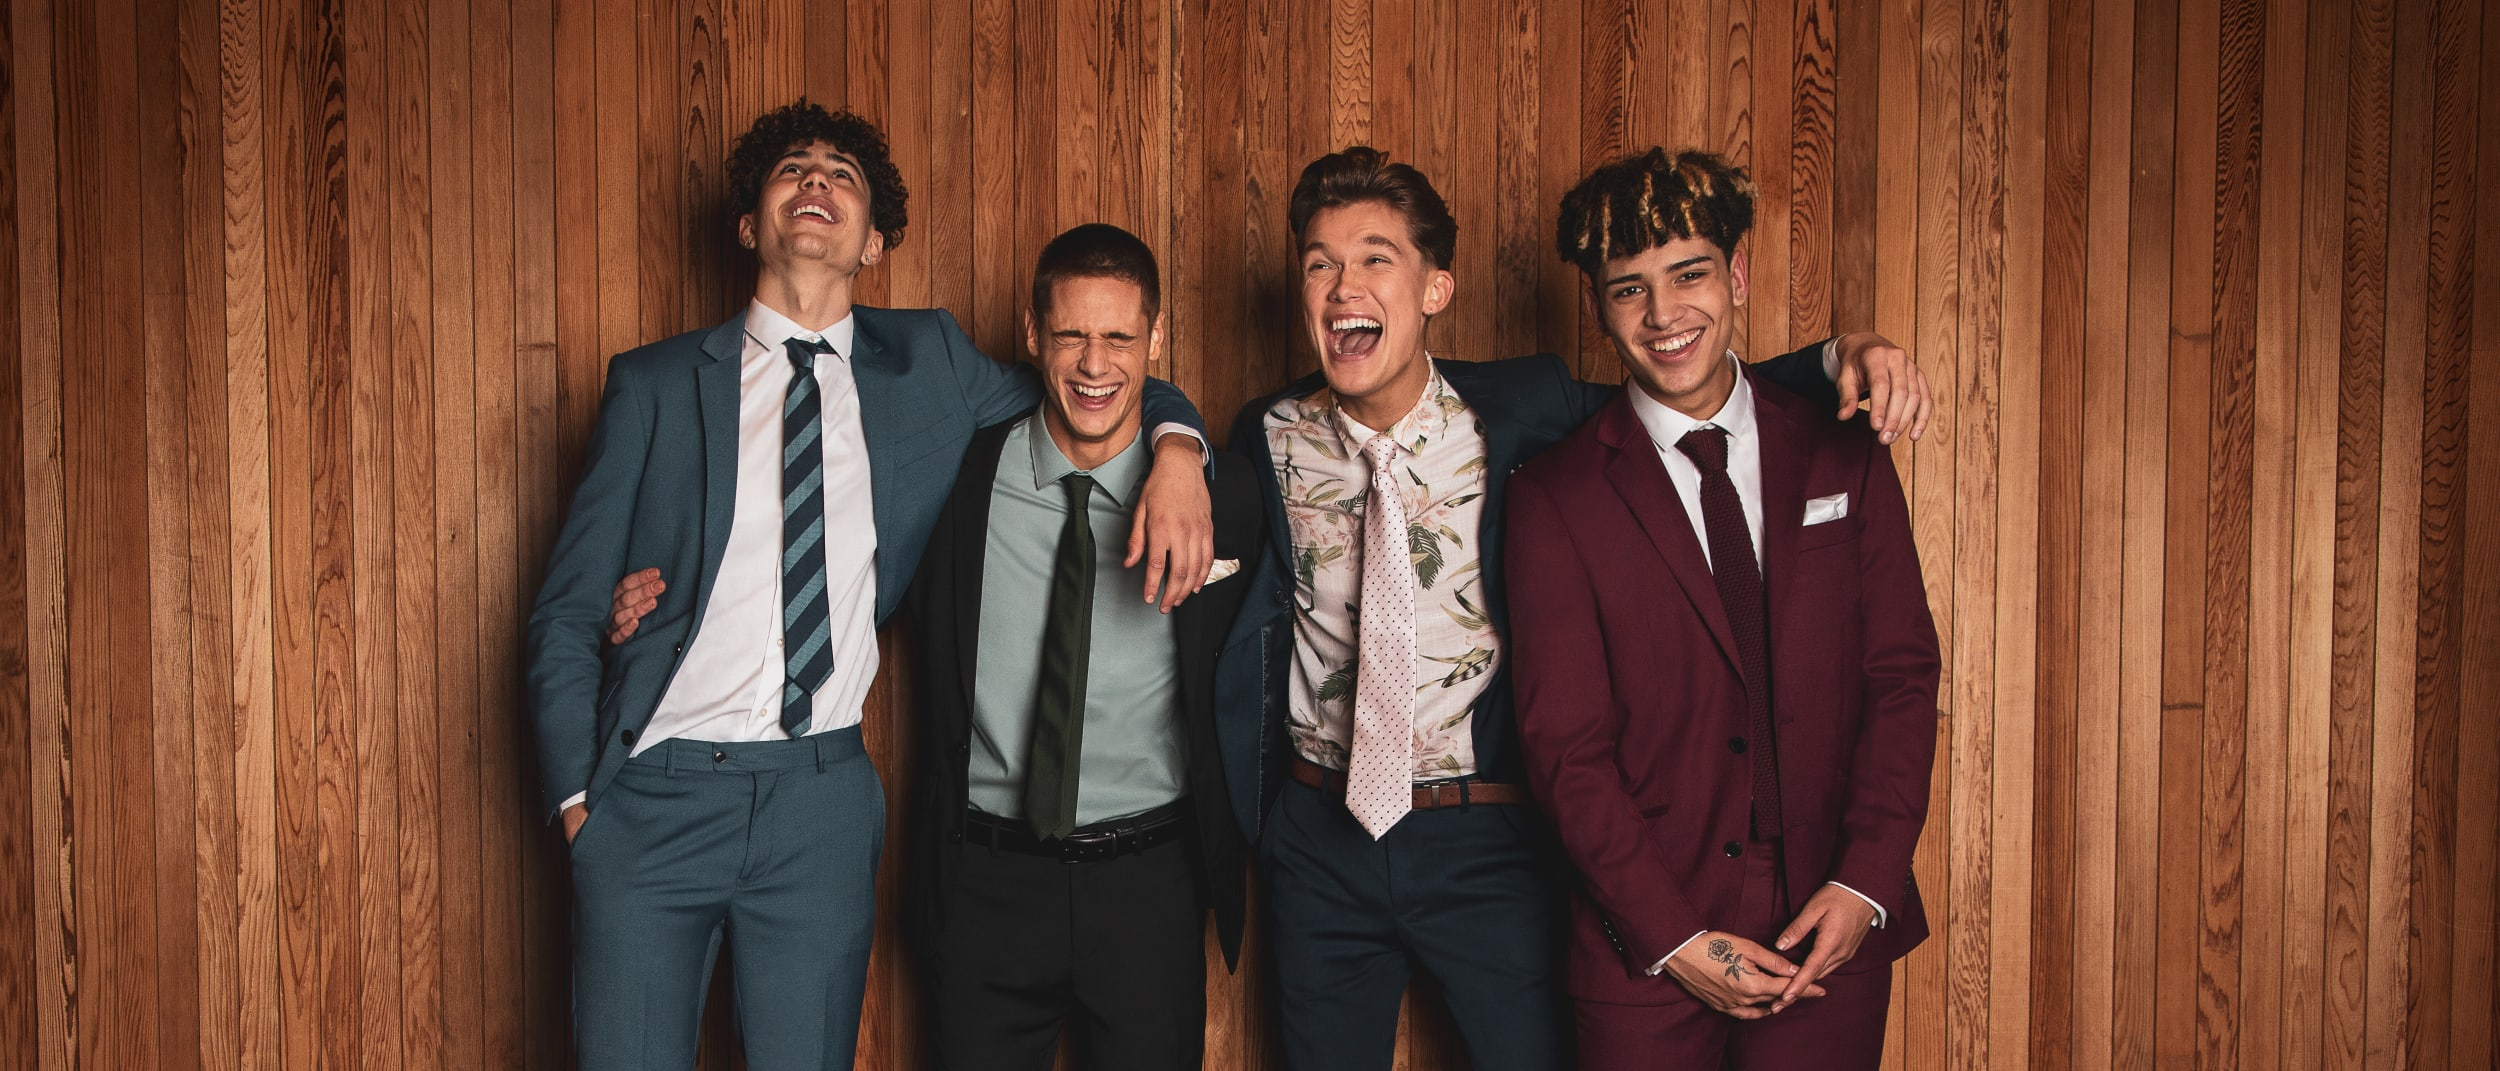 Hallenstein Brothers: All suits now $199